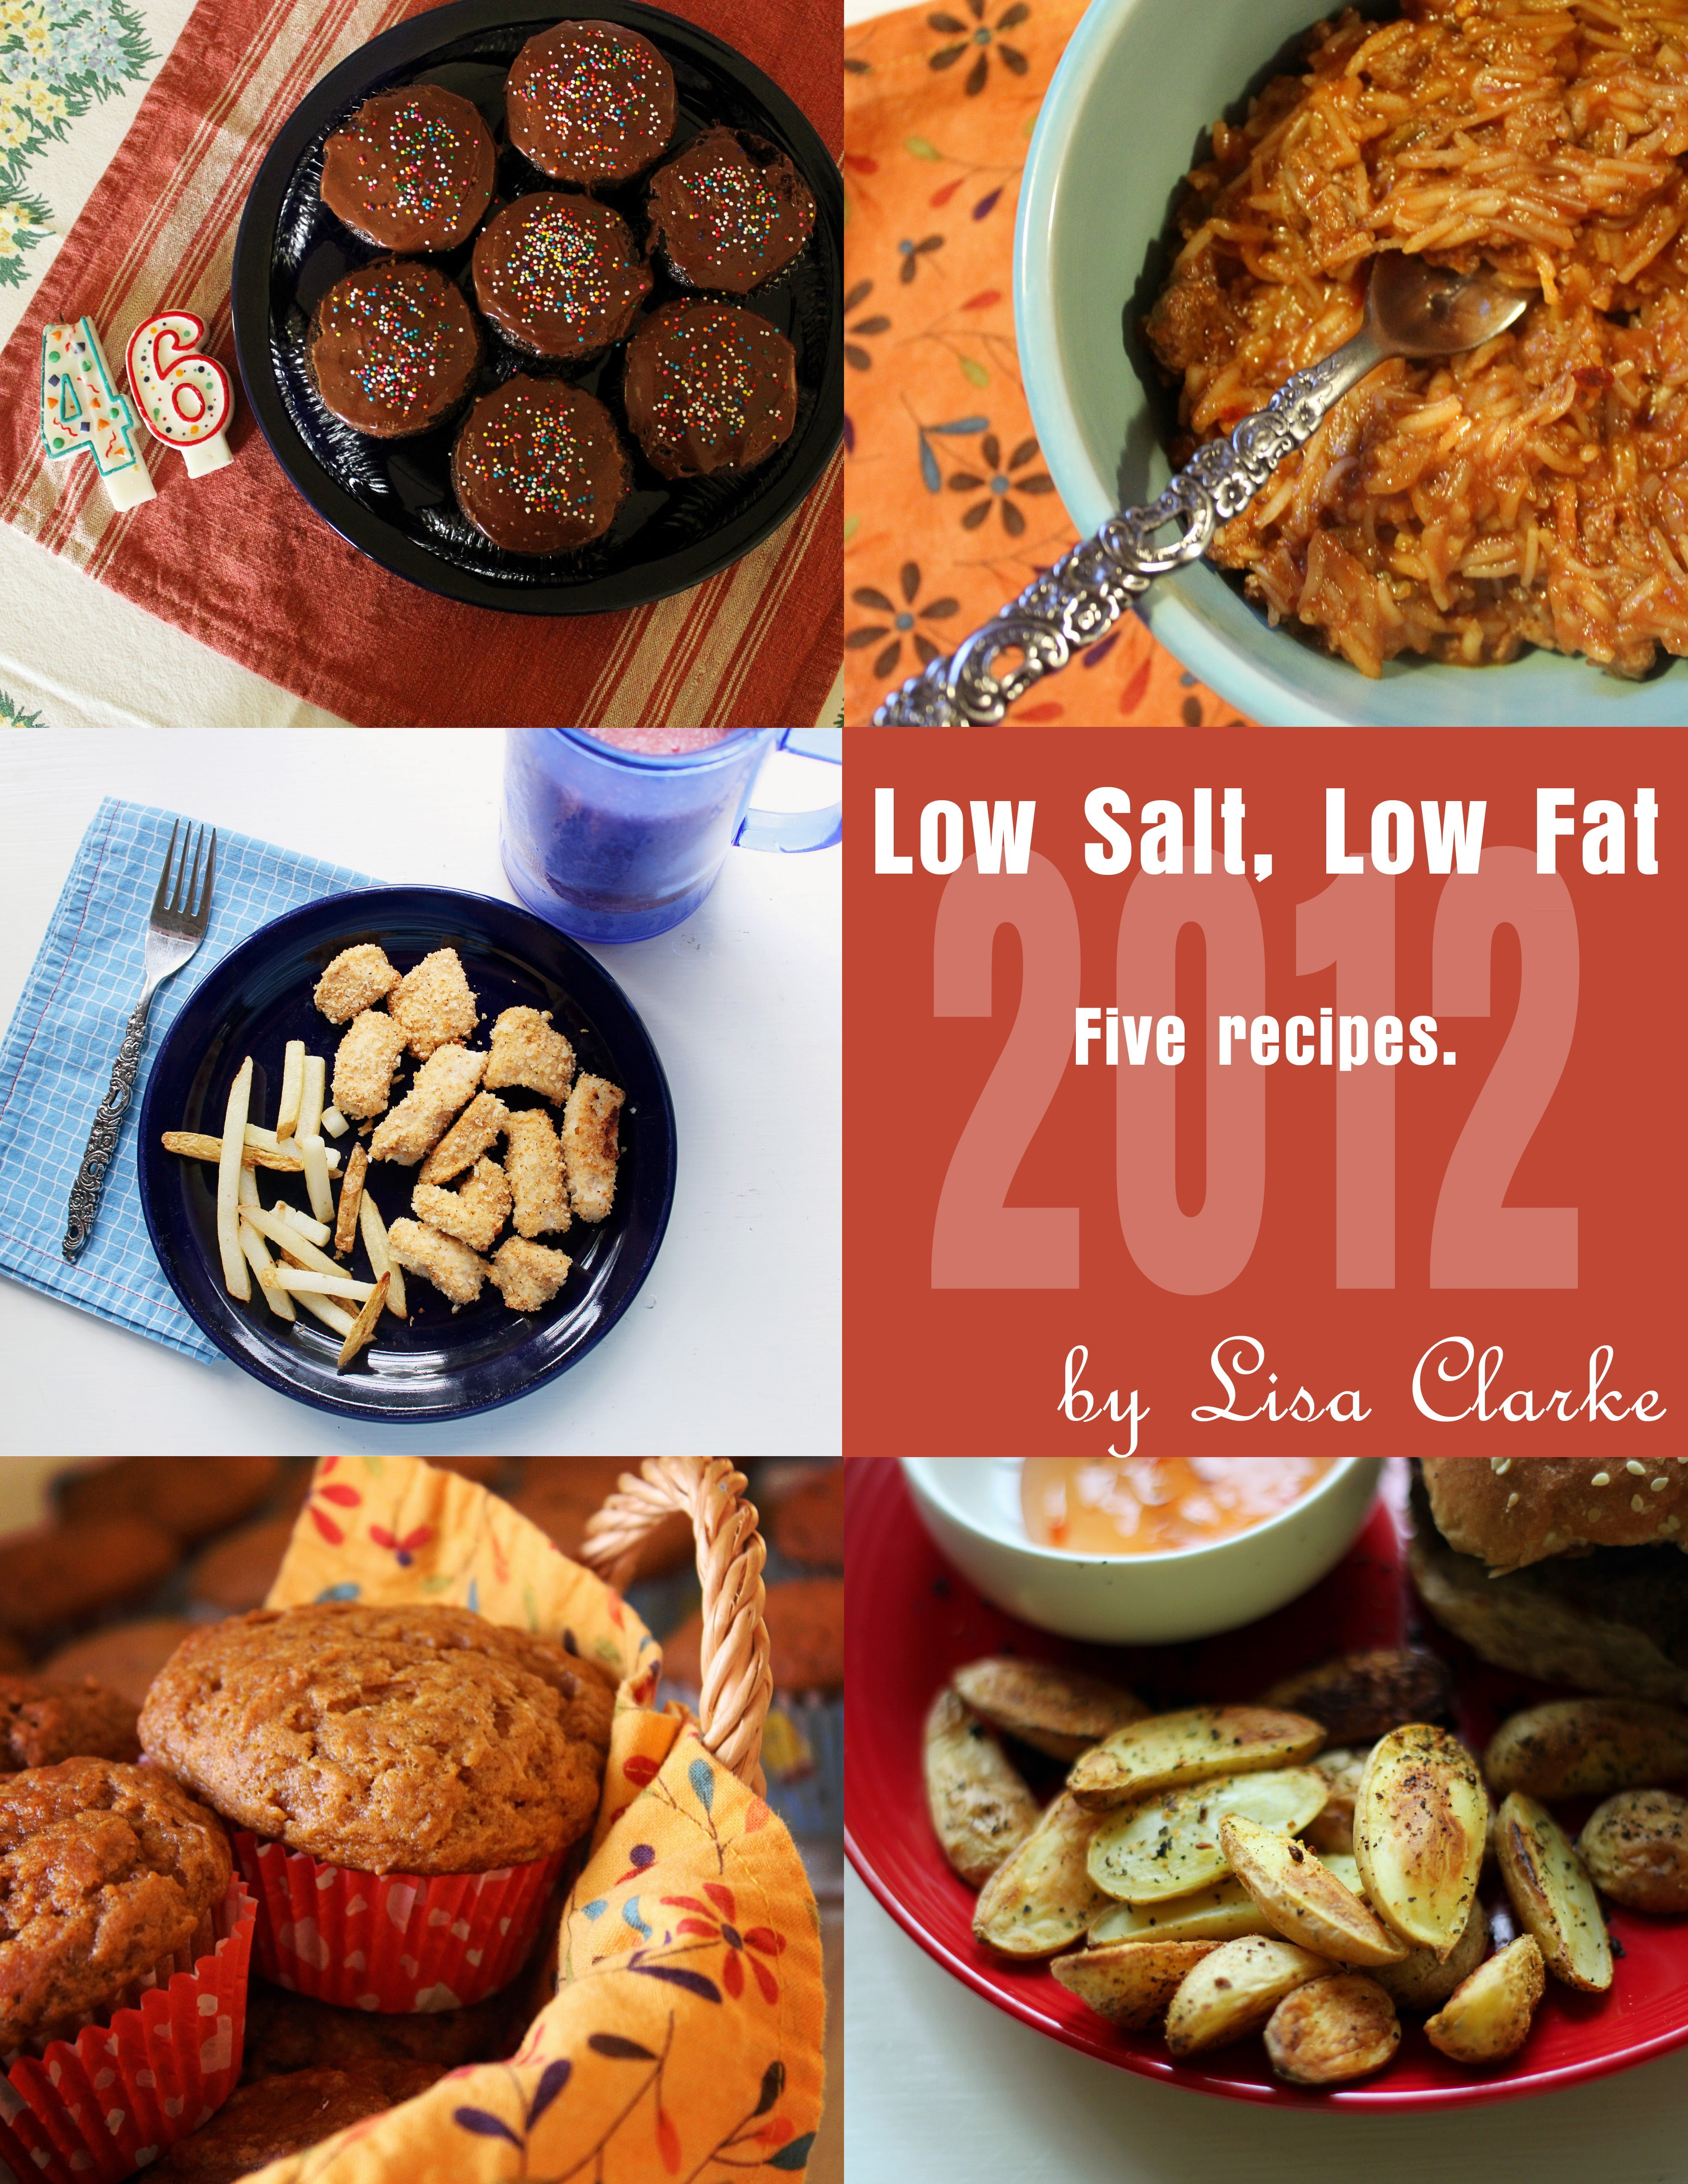 Five Low-Salt, Low-Fat Heart-Healthy recipes from Polka Dot Cottage